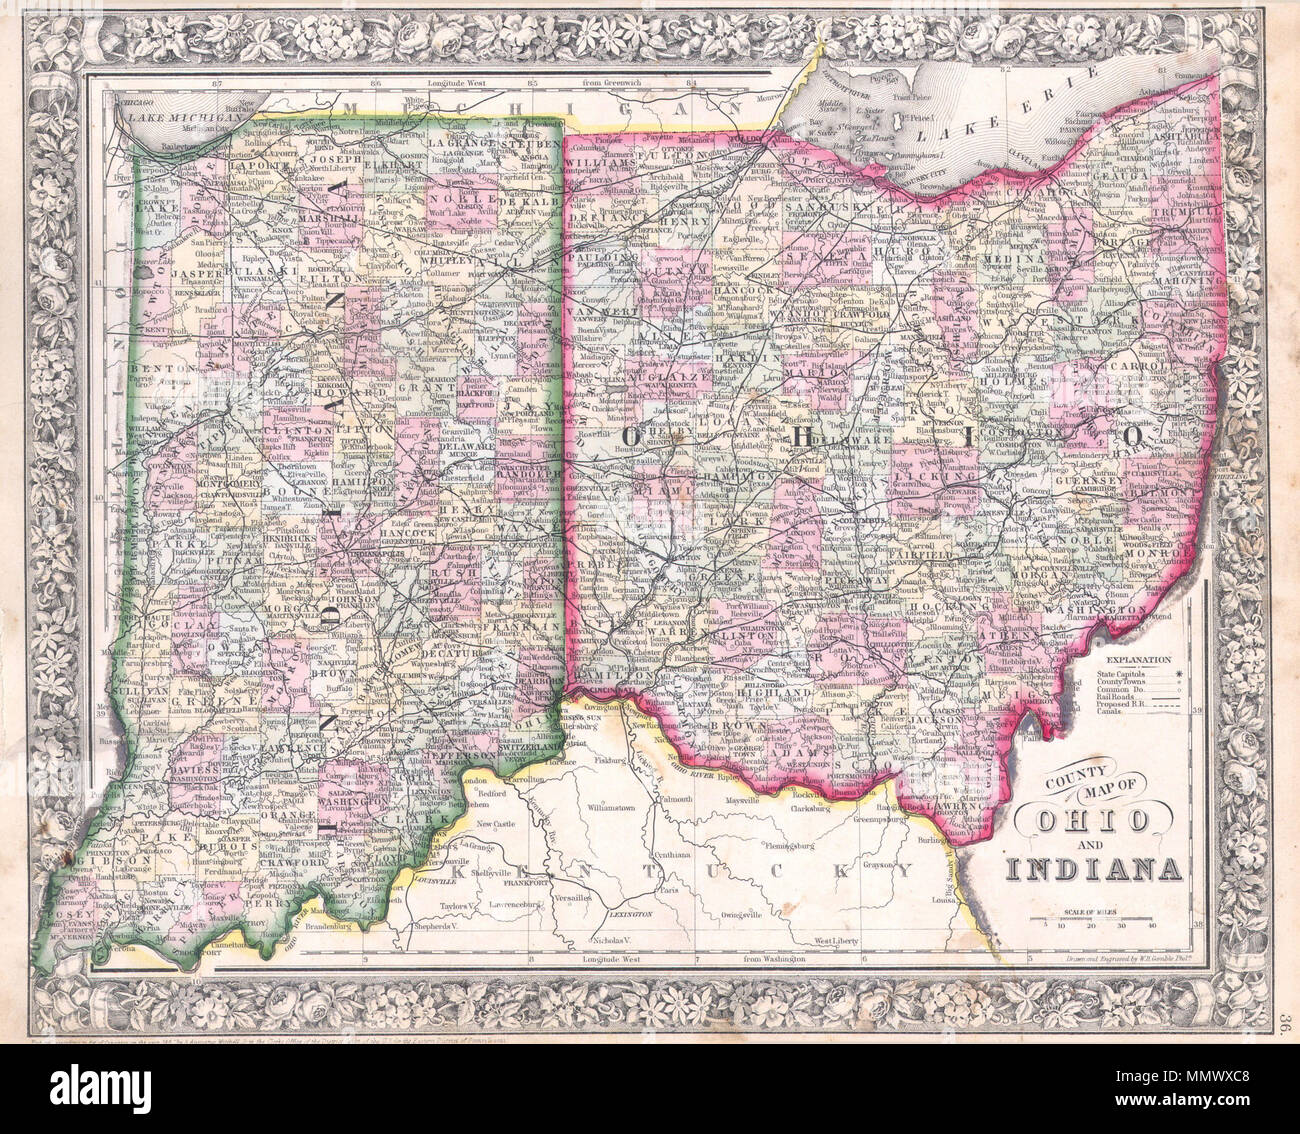 English: A beautiful example of S. A. Mitc Jr.'s 1864 ... on google map of ohio, cleveland ohio, map of southern ohio, highway map of ohio, london ohio, canton ohio, logan ohio, map of state of ohio, youngstown ohio, the plains ohio, county map of ohio, counties of ohio, large maps of ohio, map of north east ohio, piketon ohio, simple map of ohio, all cities in ohio, beaver creek ohio, towns of ohio, agricultural map of ohio,